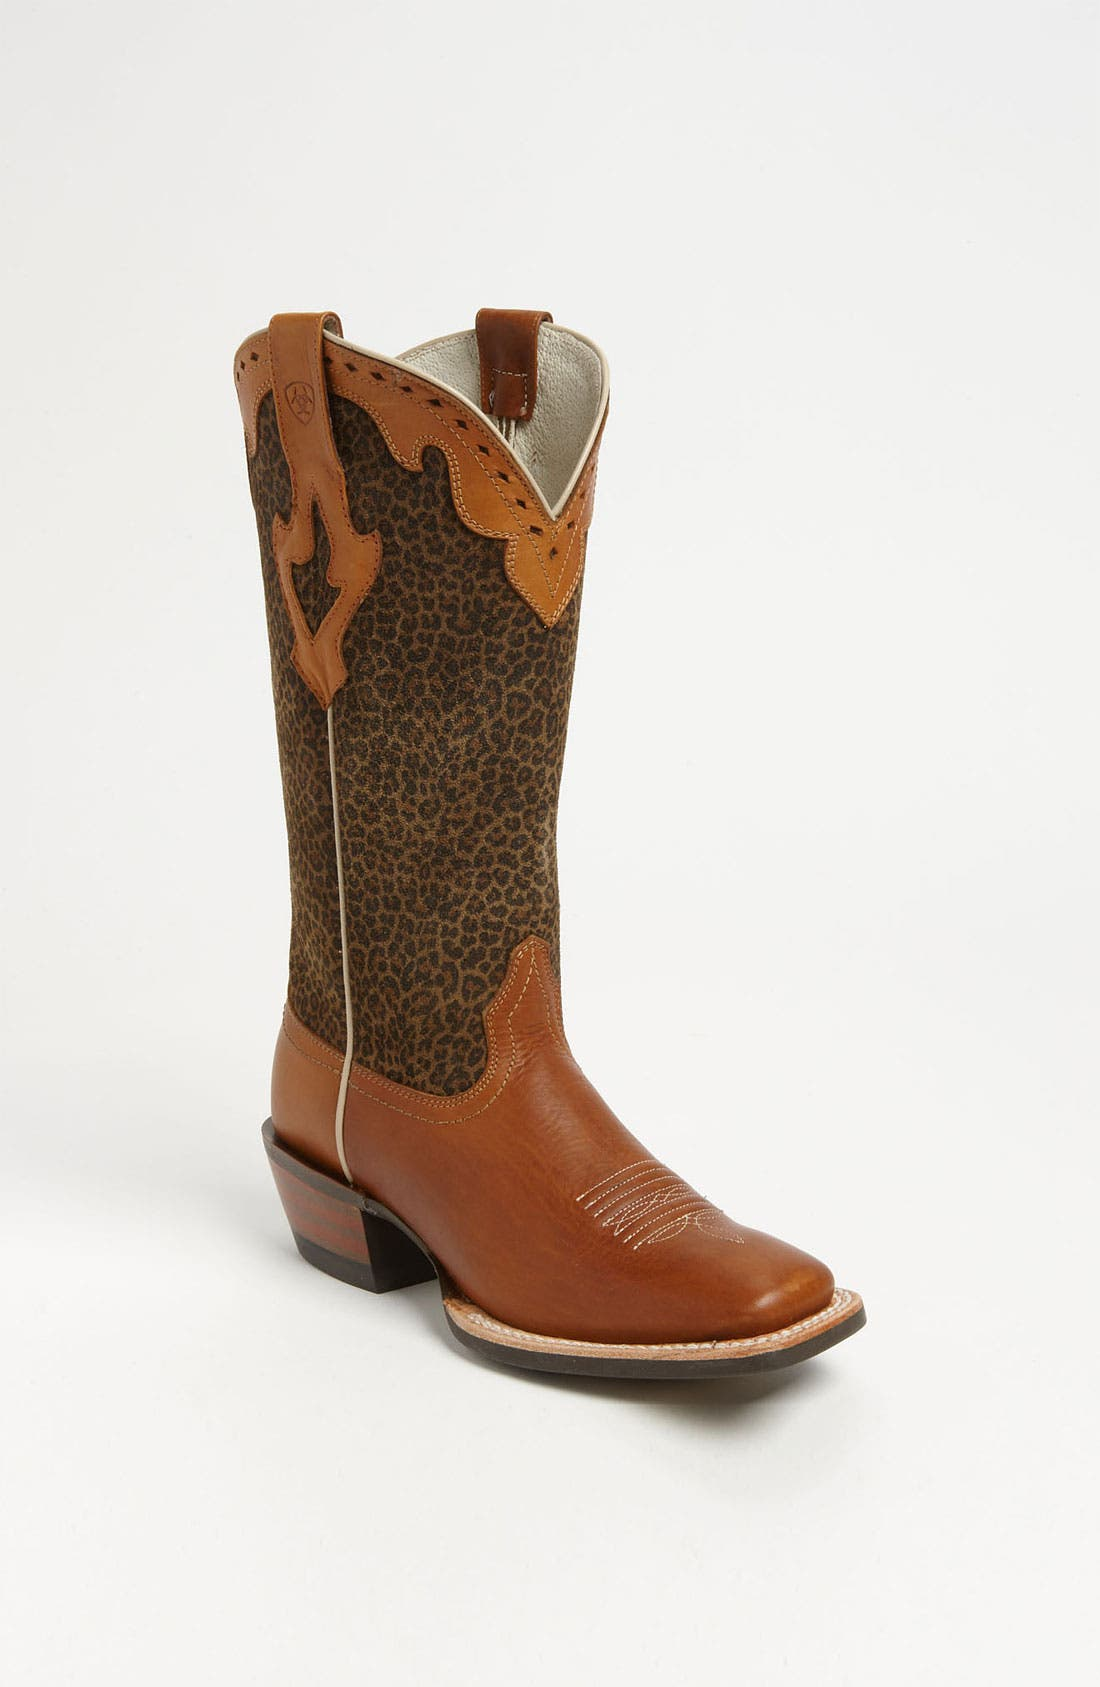 Alternate Image 1 Selected - Ariat 'Crossfire Caliente' Boot (Online Only)